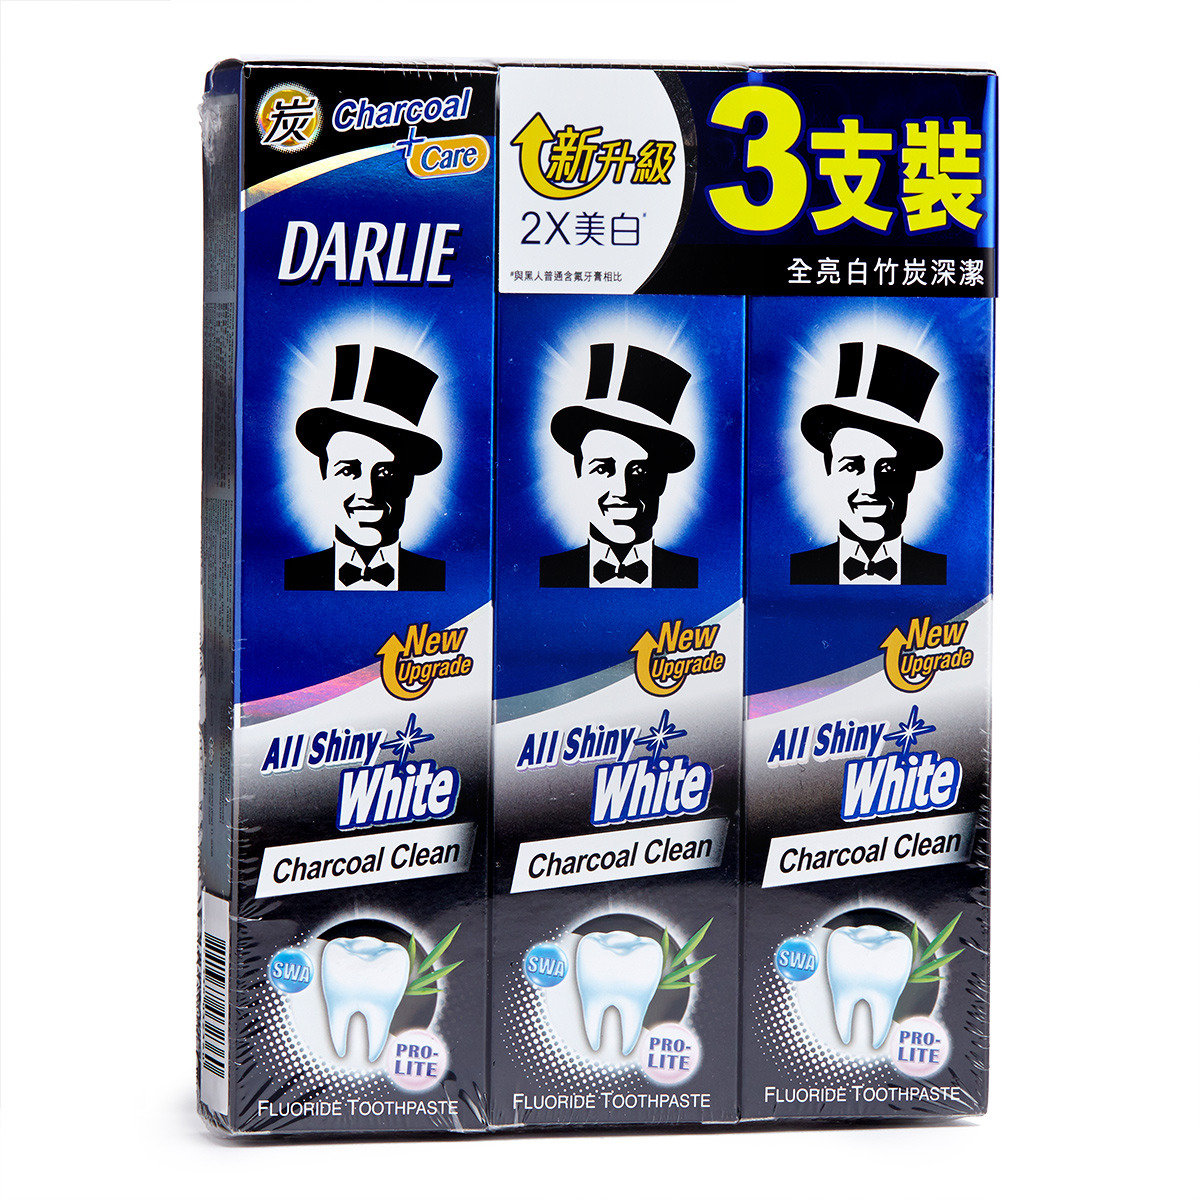 Darlie Pro Lite All Shiny White Charcoal Clean Fluoride Toothpaste Hktvmall Online Shopping